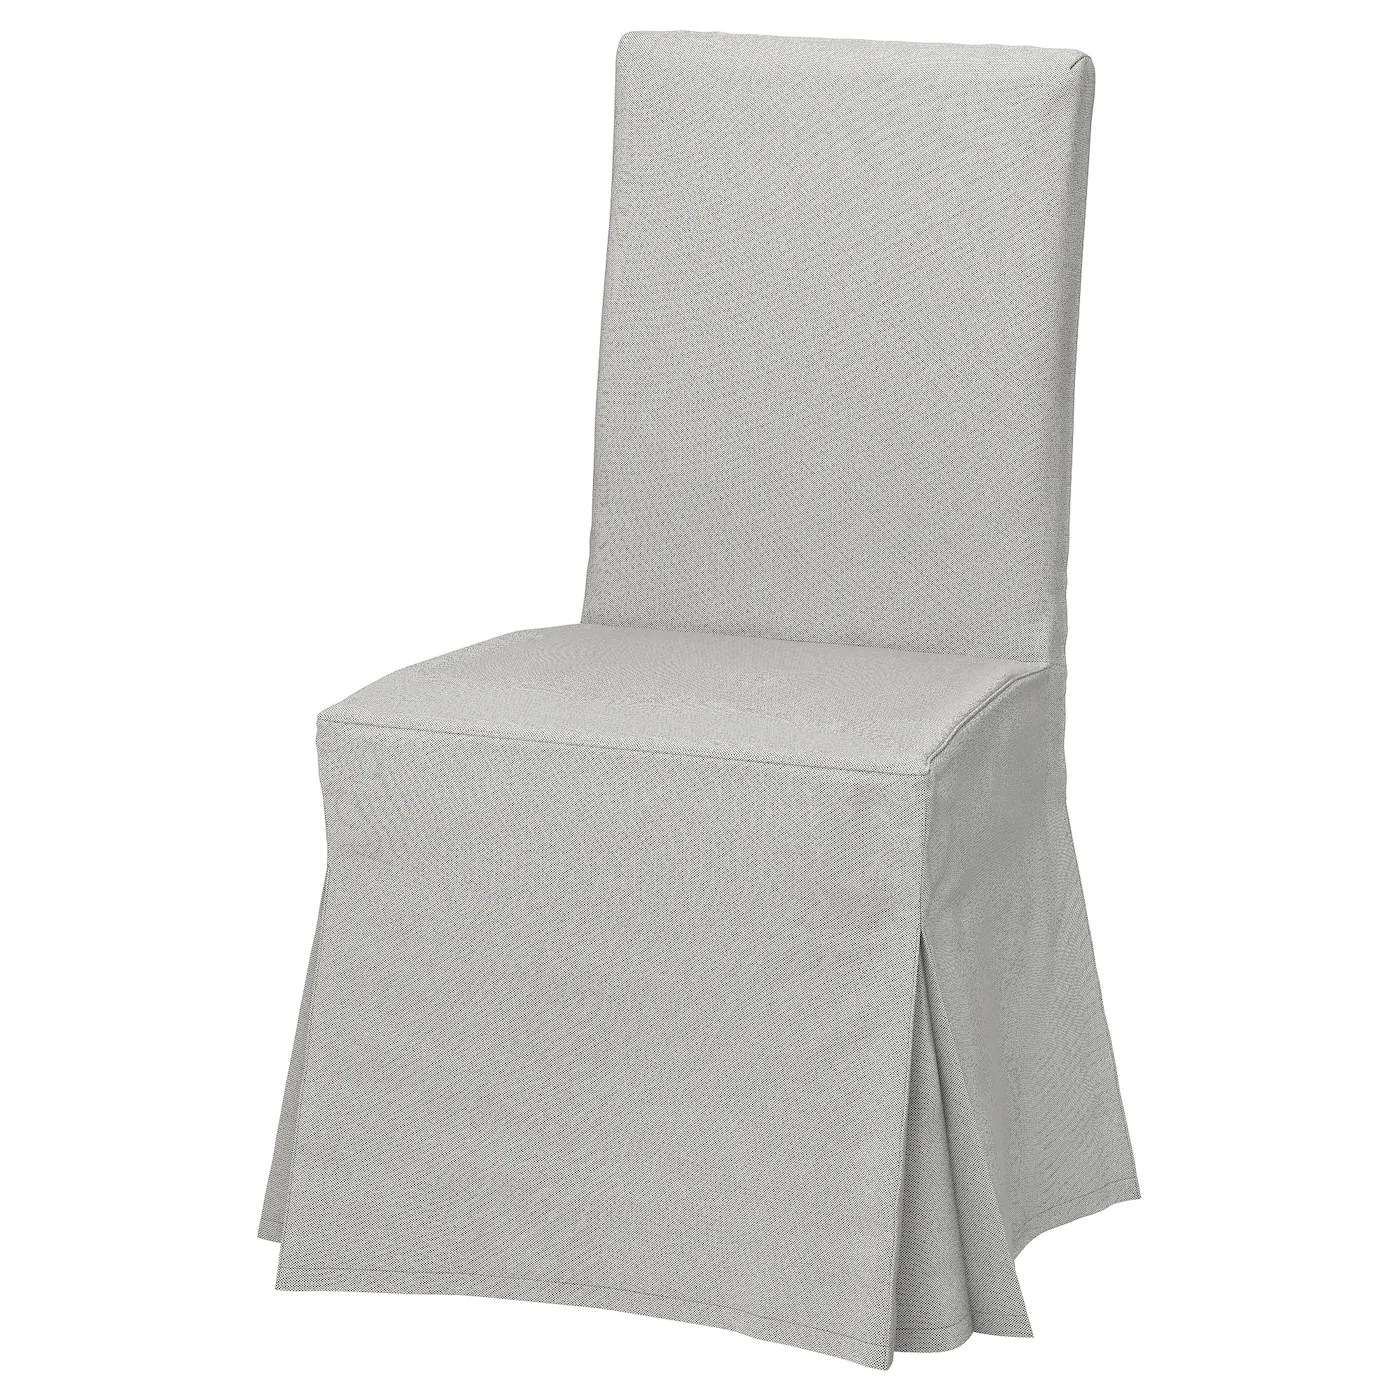 Ikea Tirup Chair Covers Dining Chair Covers Ikea